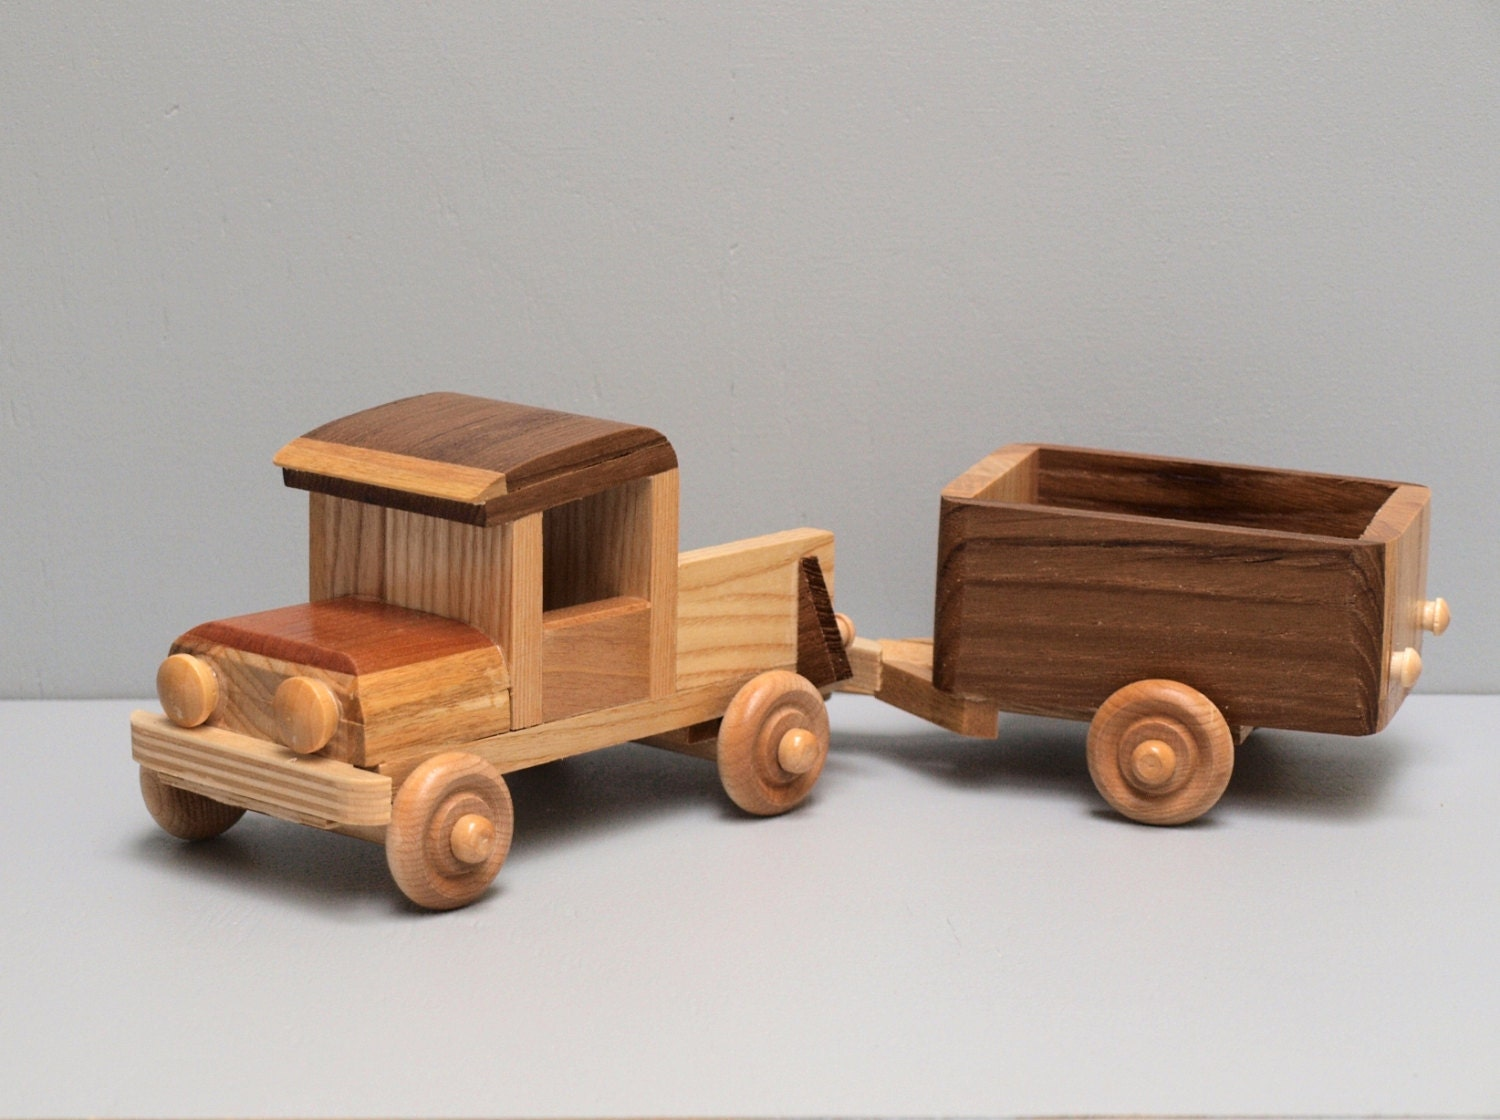 Permalink to homemade wooden toy trucks